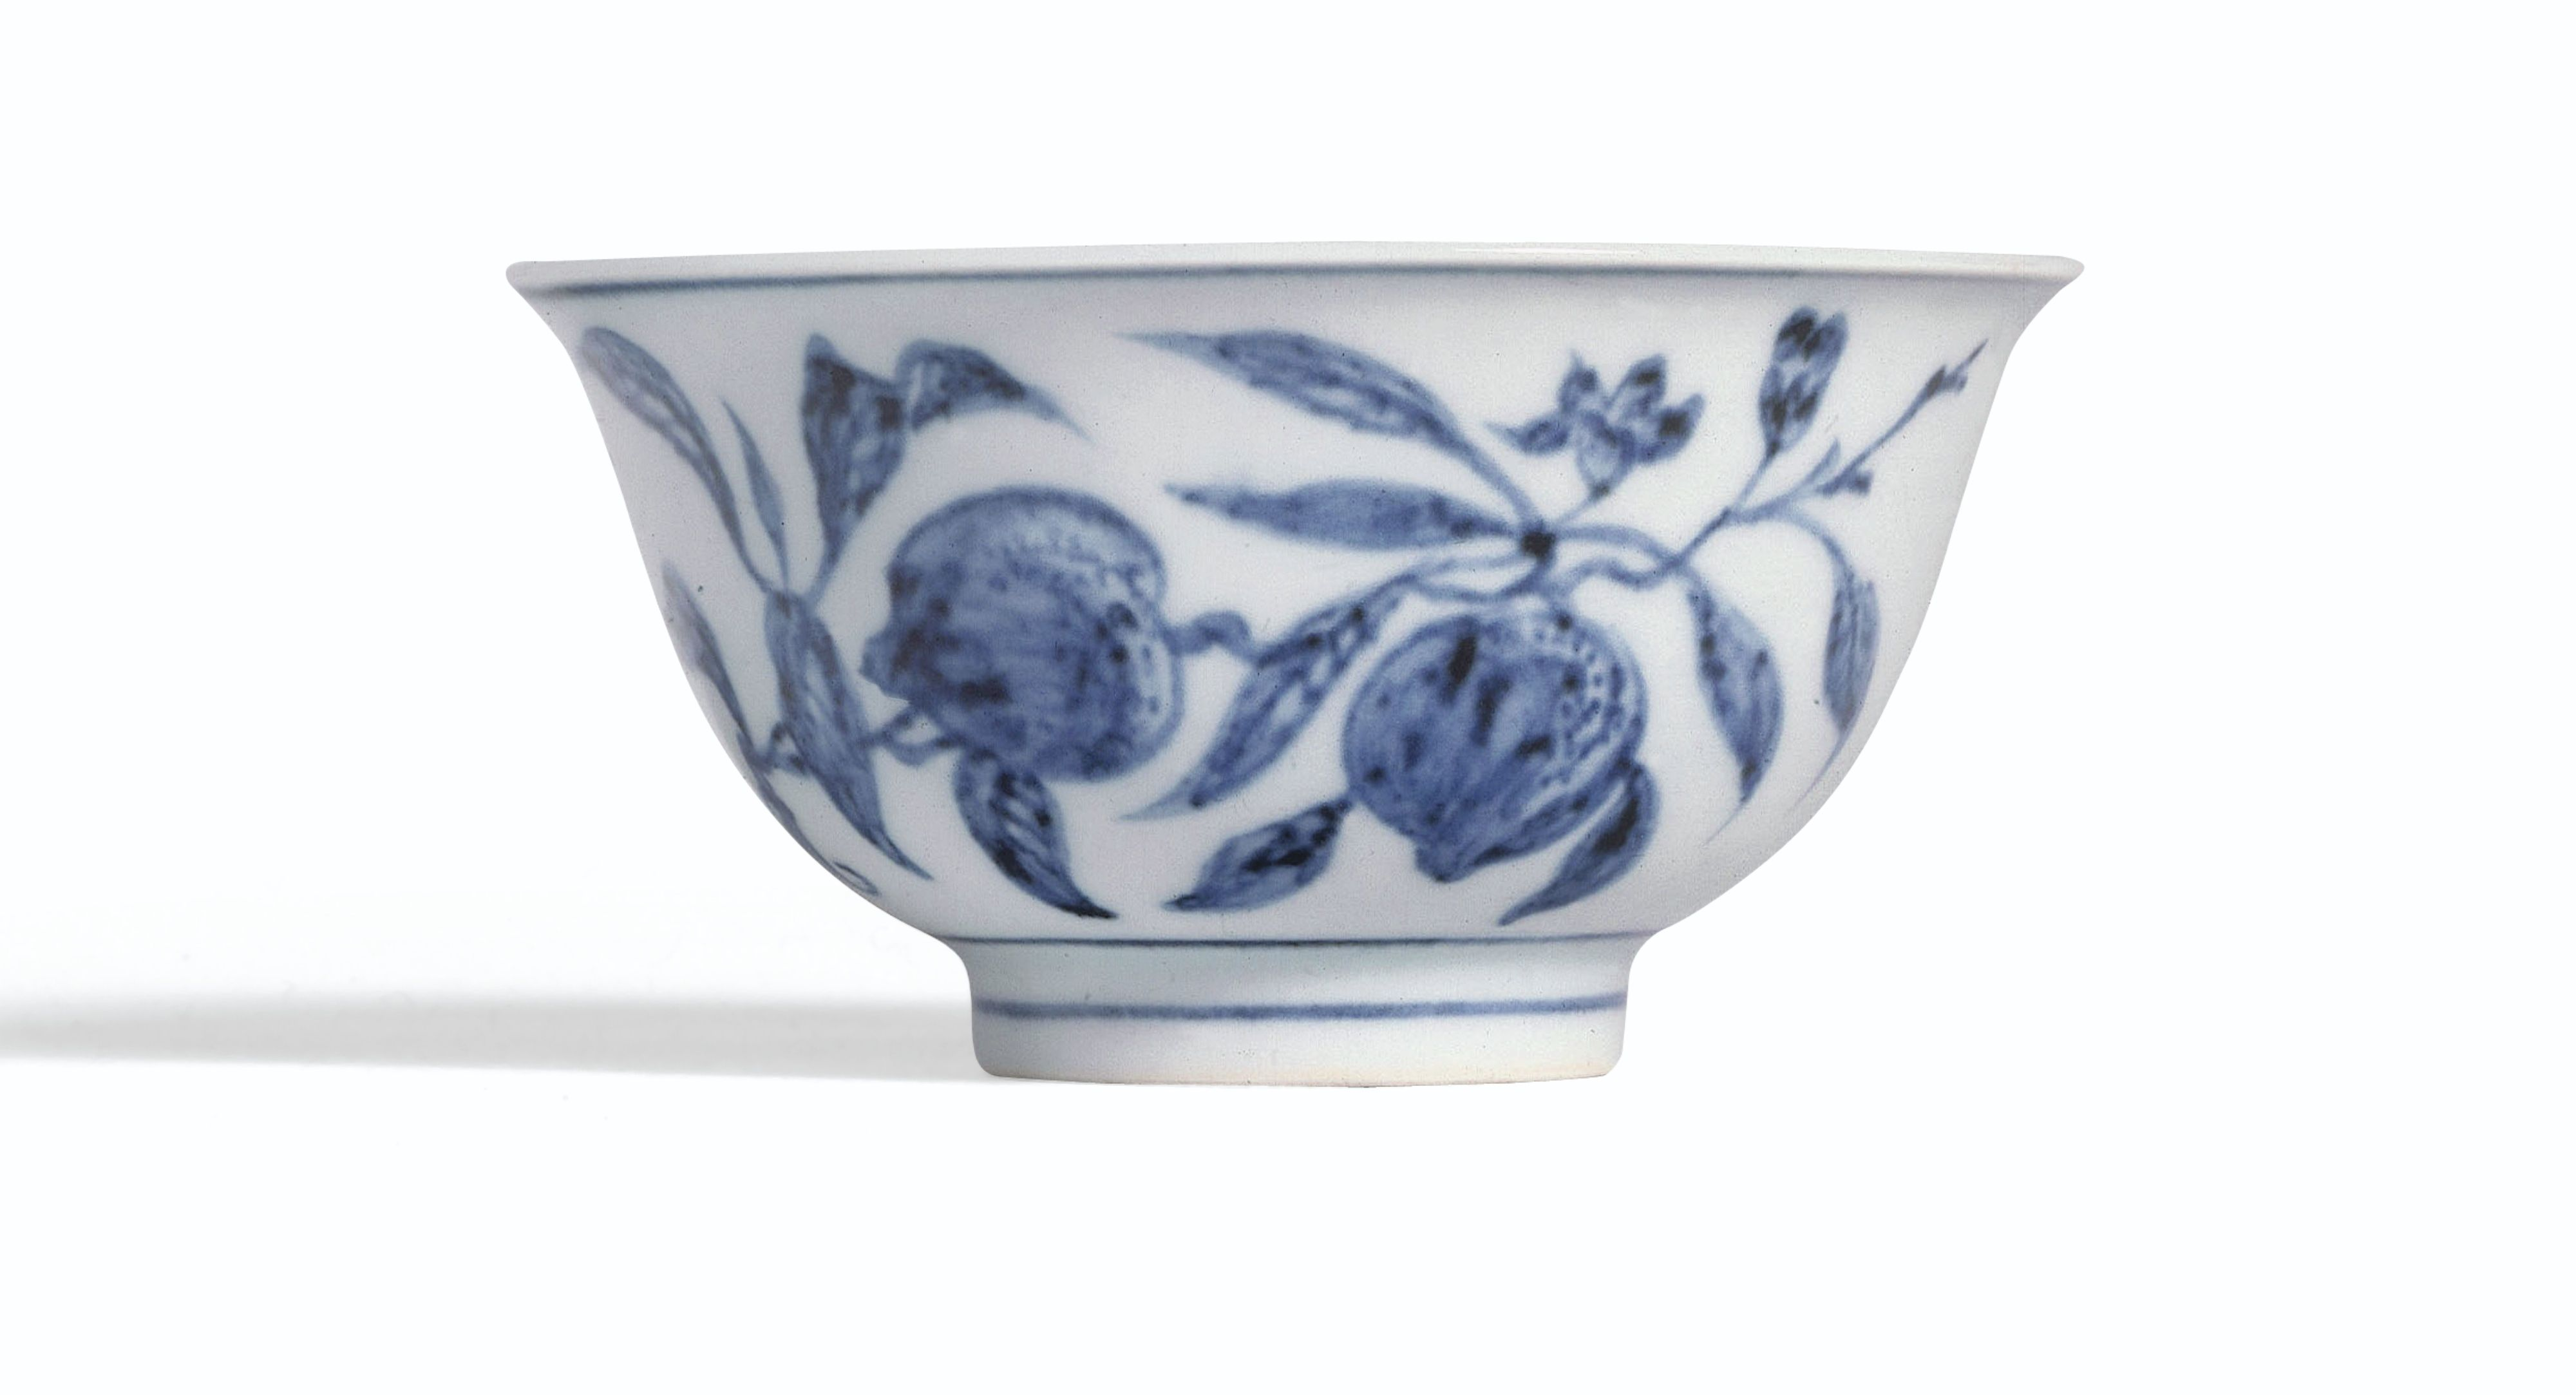 A RARE BLUE AND WHITE 'PEACH' CUP  MING DYNASTY, YONGLE PERIOD.